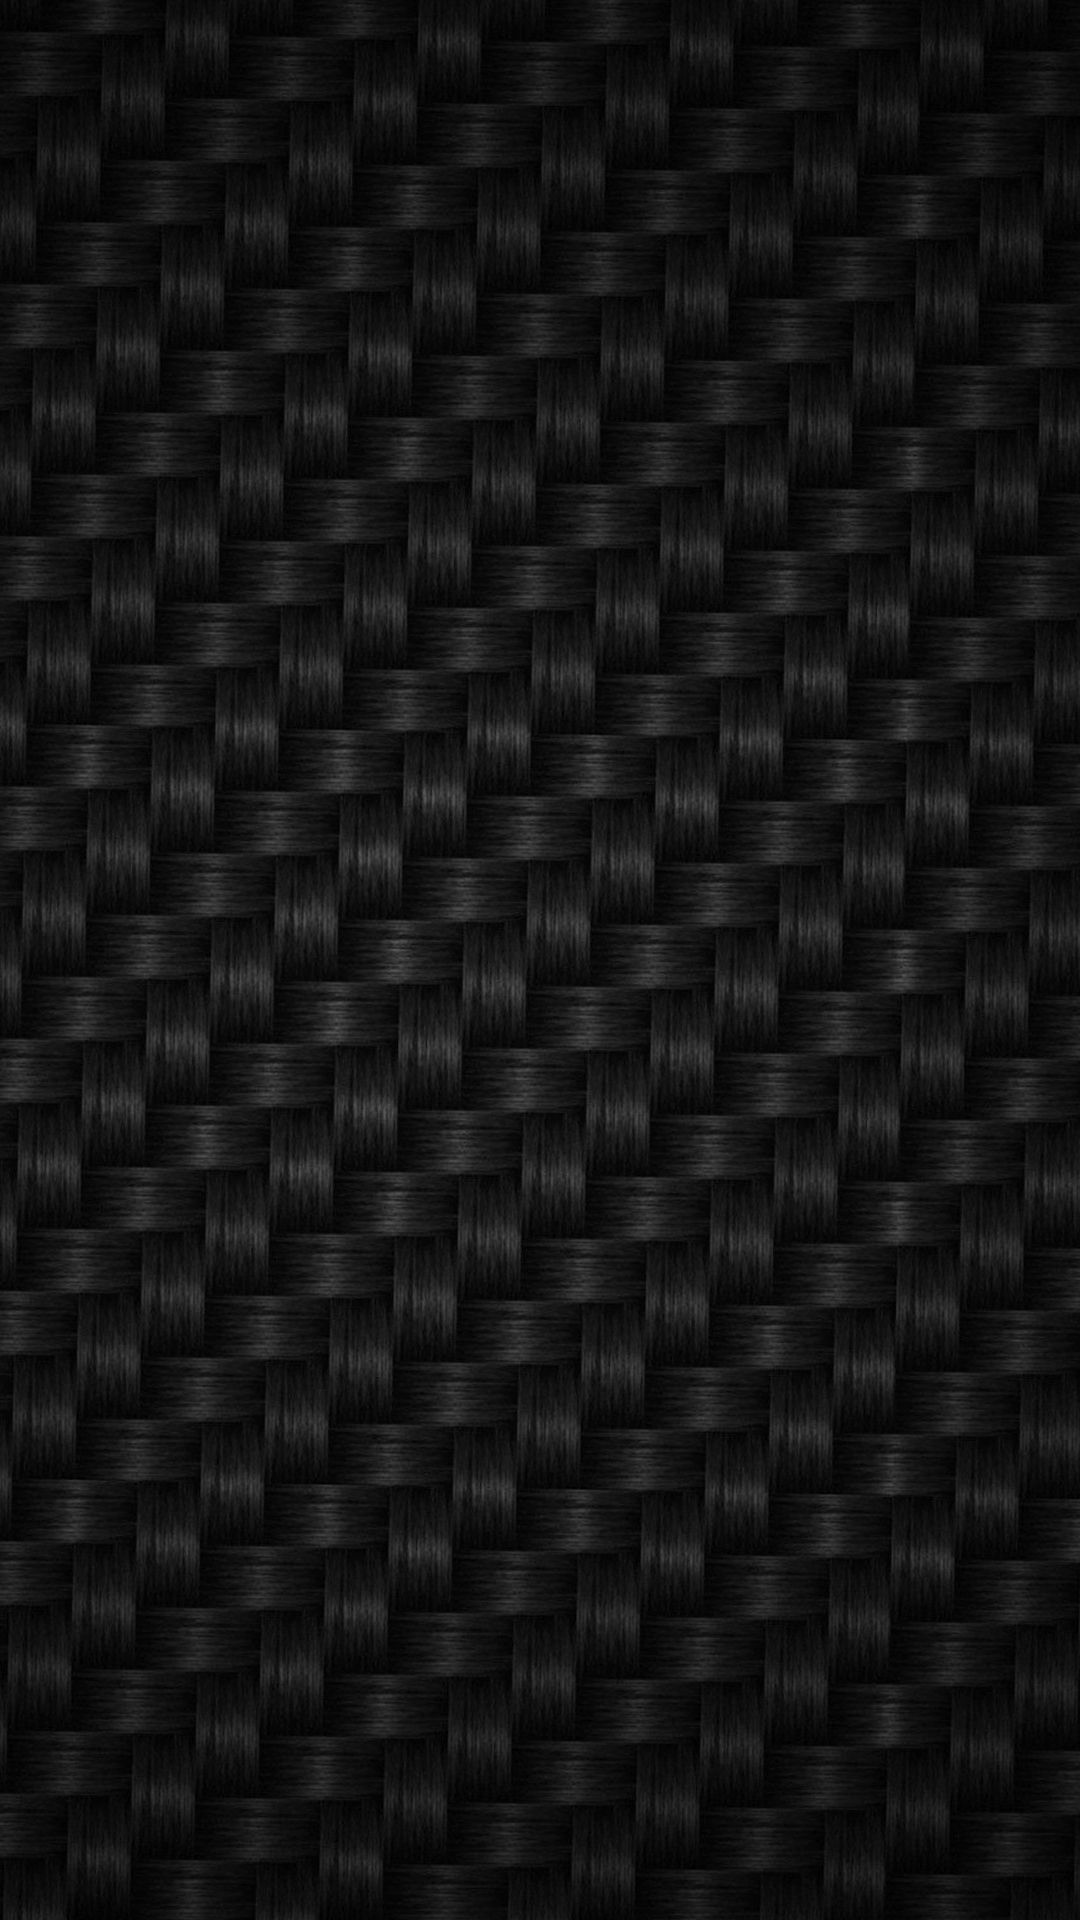 Best D Black iOS wallpaper